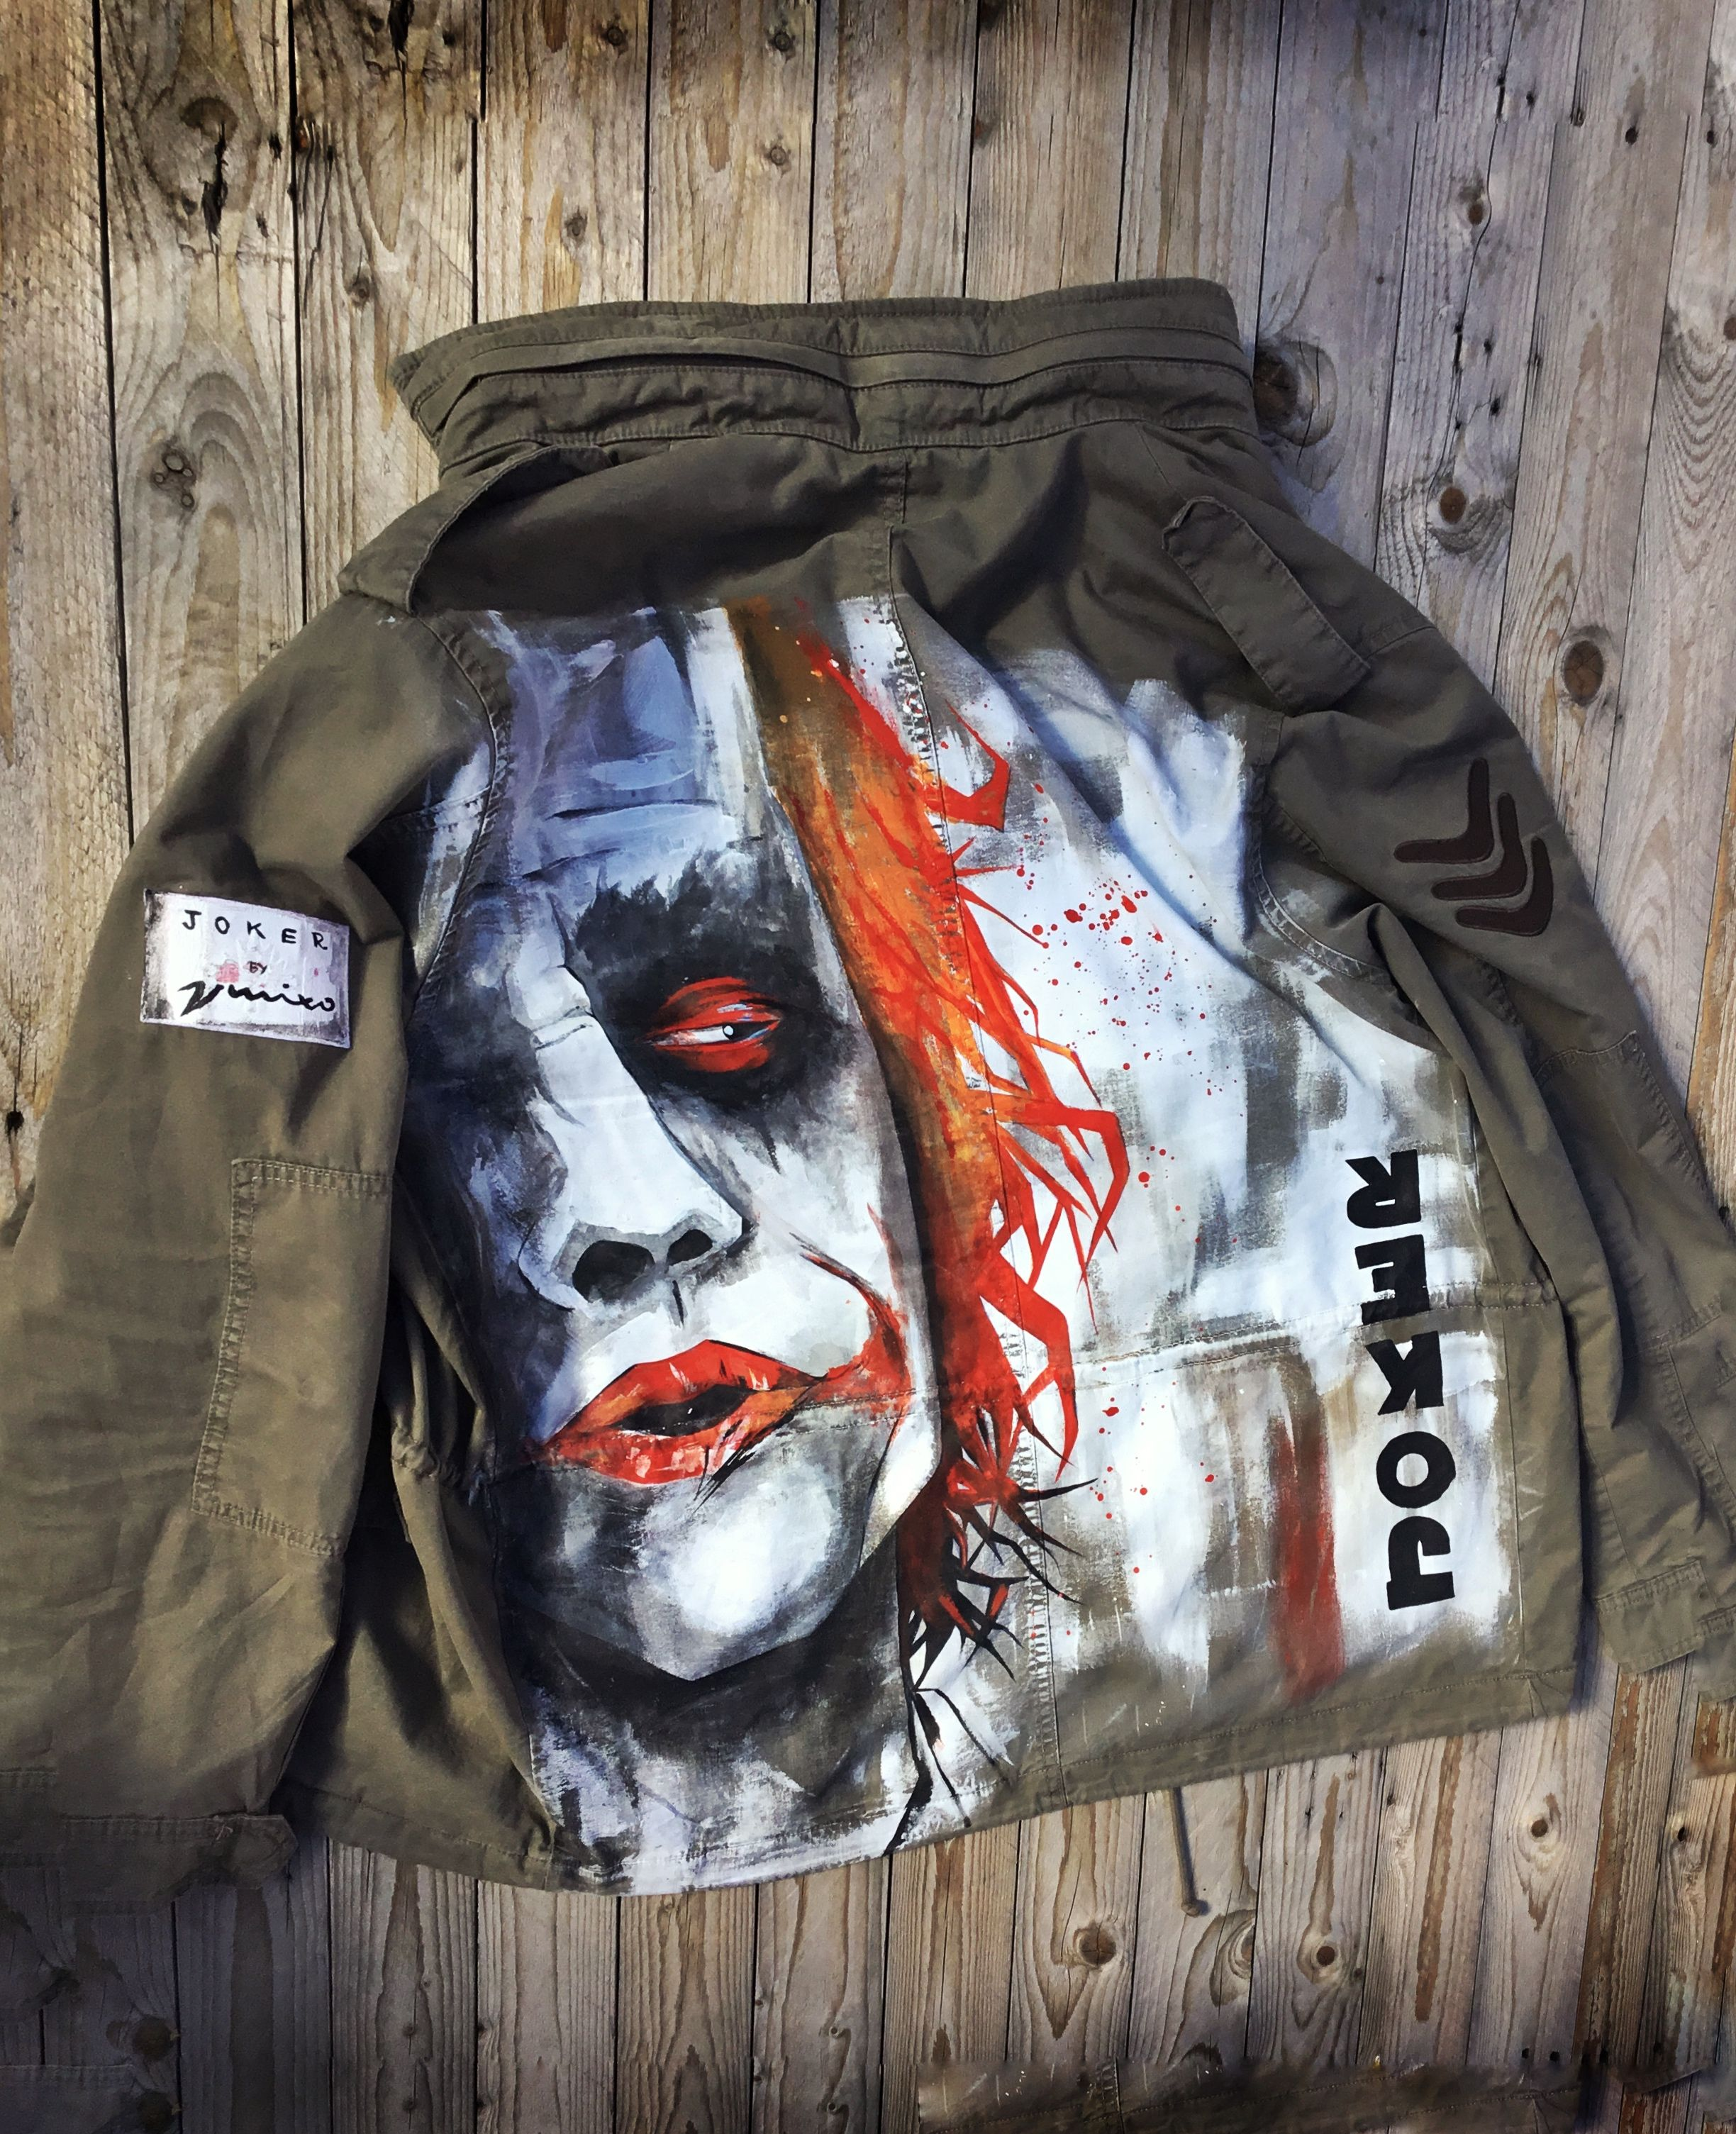 Why So Serious Joker S Hand Painted Army Jacket By Vmixo Hand Painted Army Jacket Joker Jacket Army Jacket [ 3009 x 2448 Pixel ]